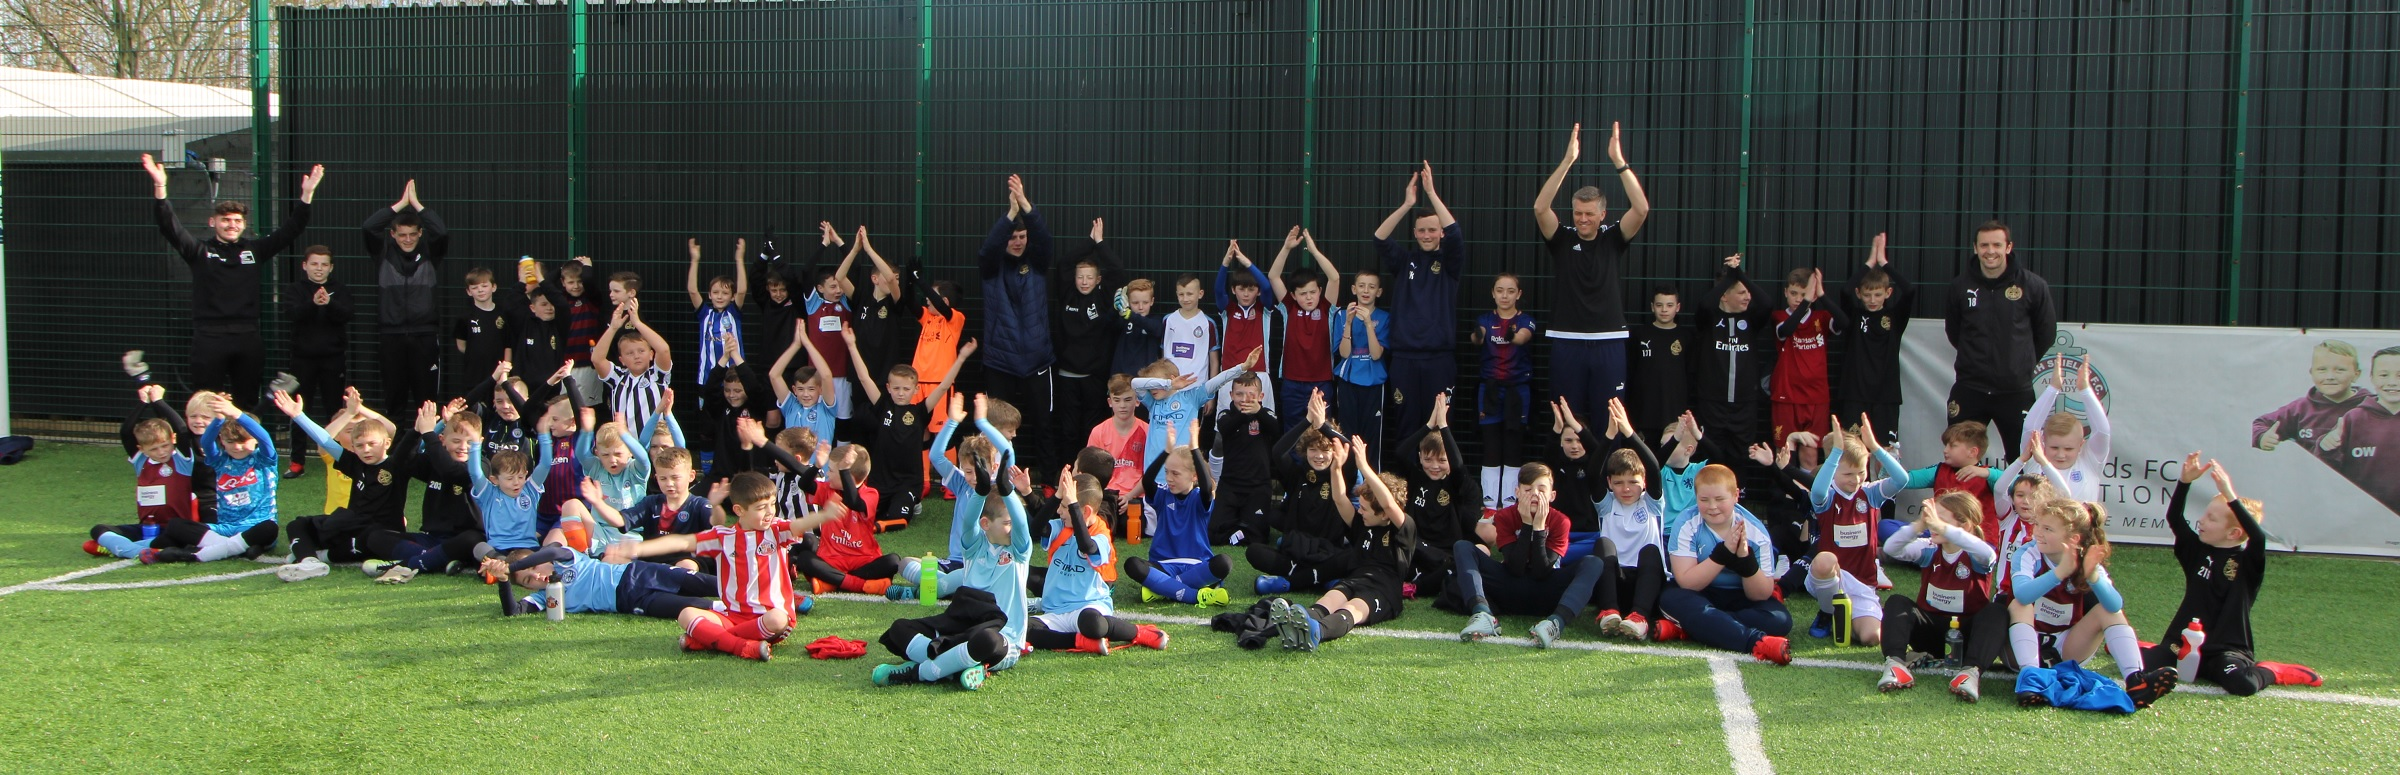 More opportunities for children to get involved with SSFC activity programmes